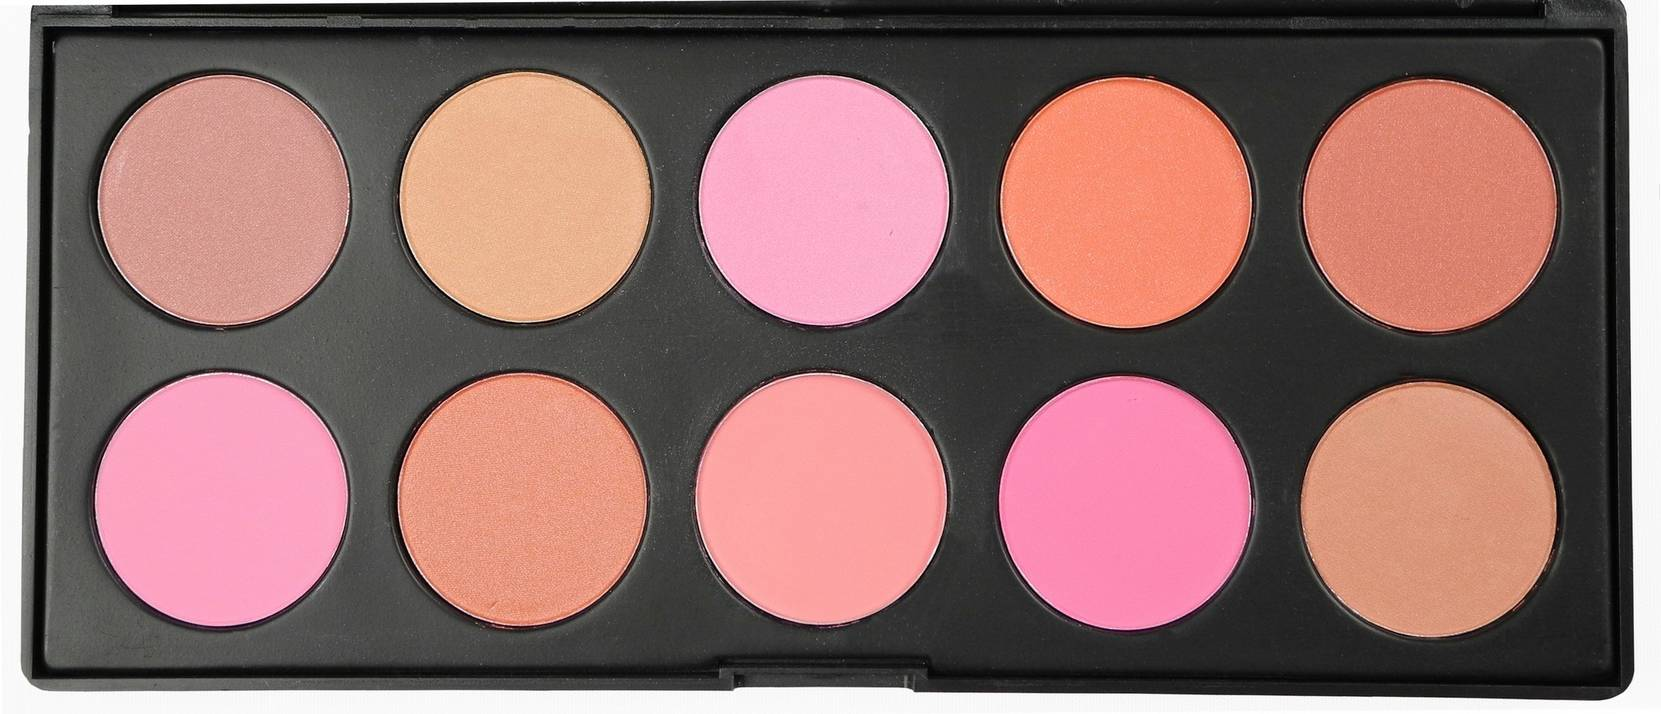 10 Color Blush Palette 67 g